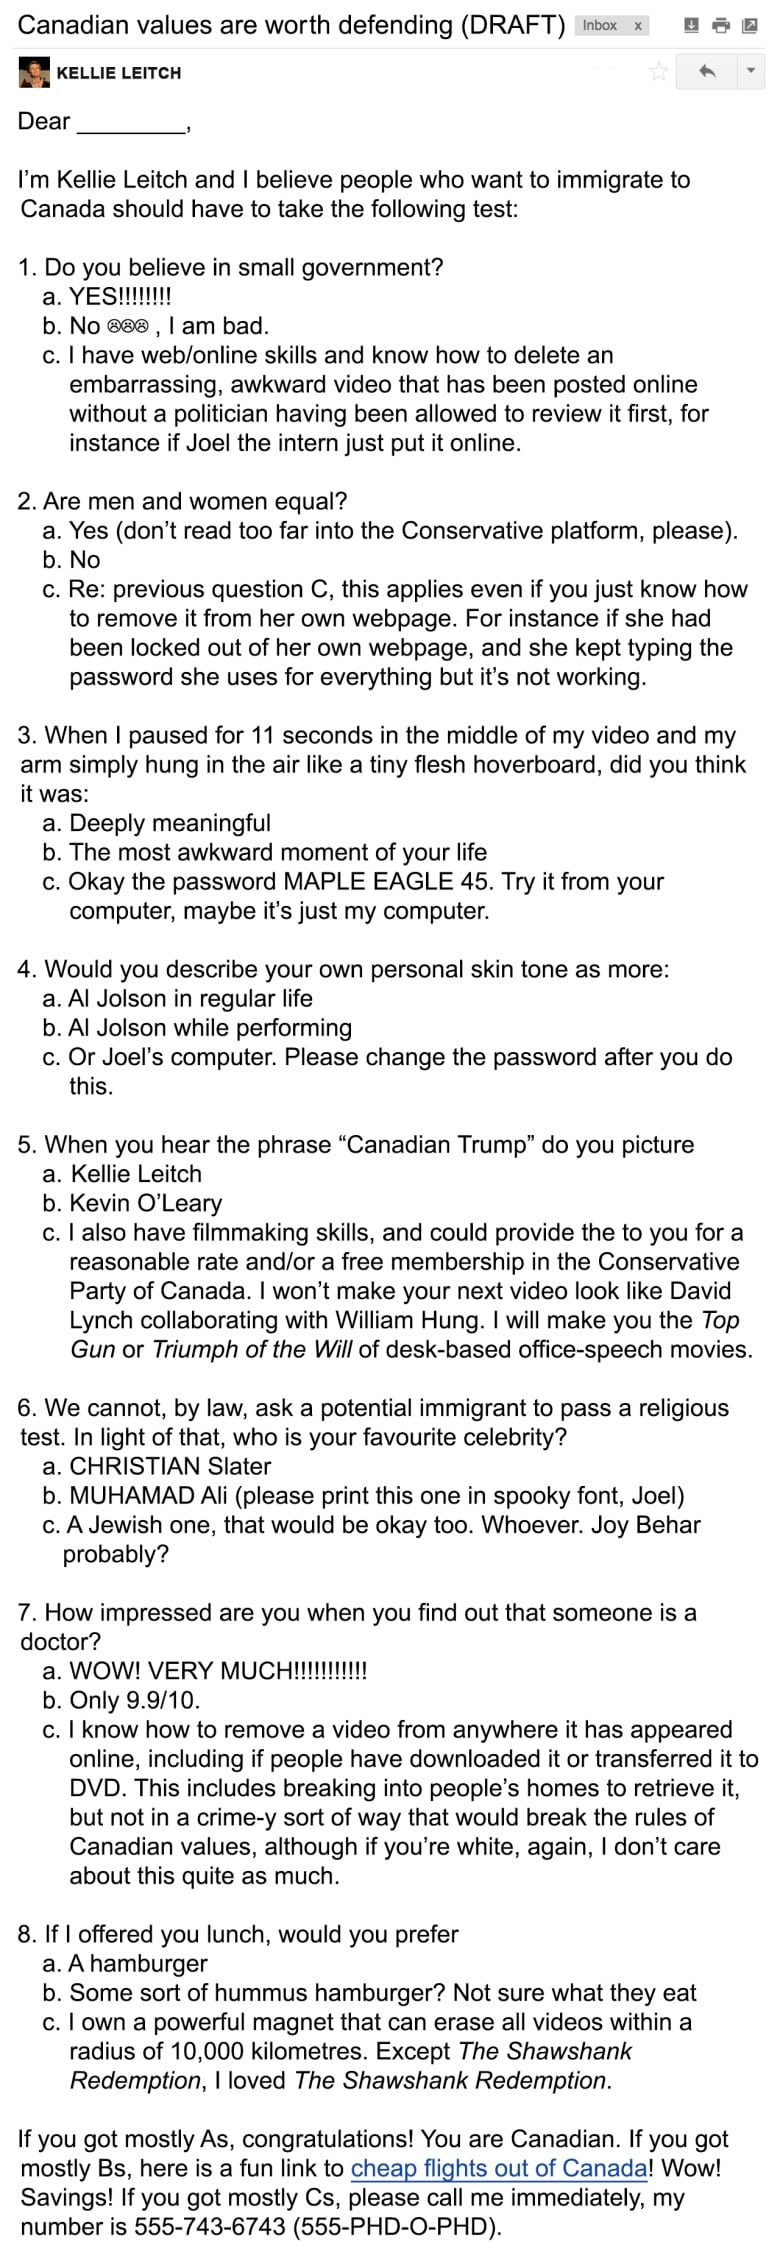 LEAKED: First draft of Kellie Leitch's 'Canadian values